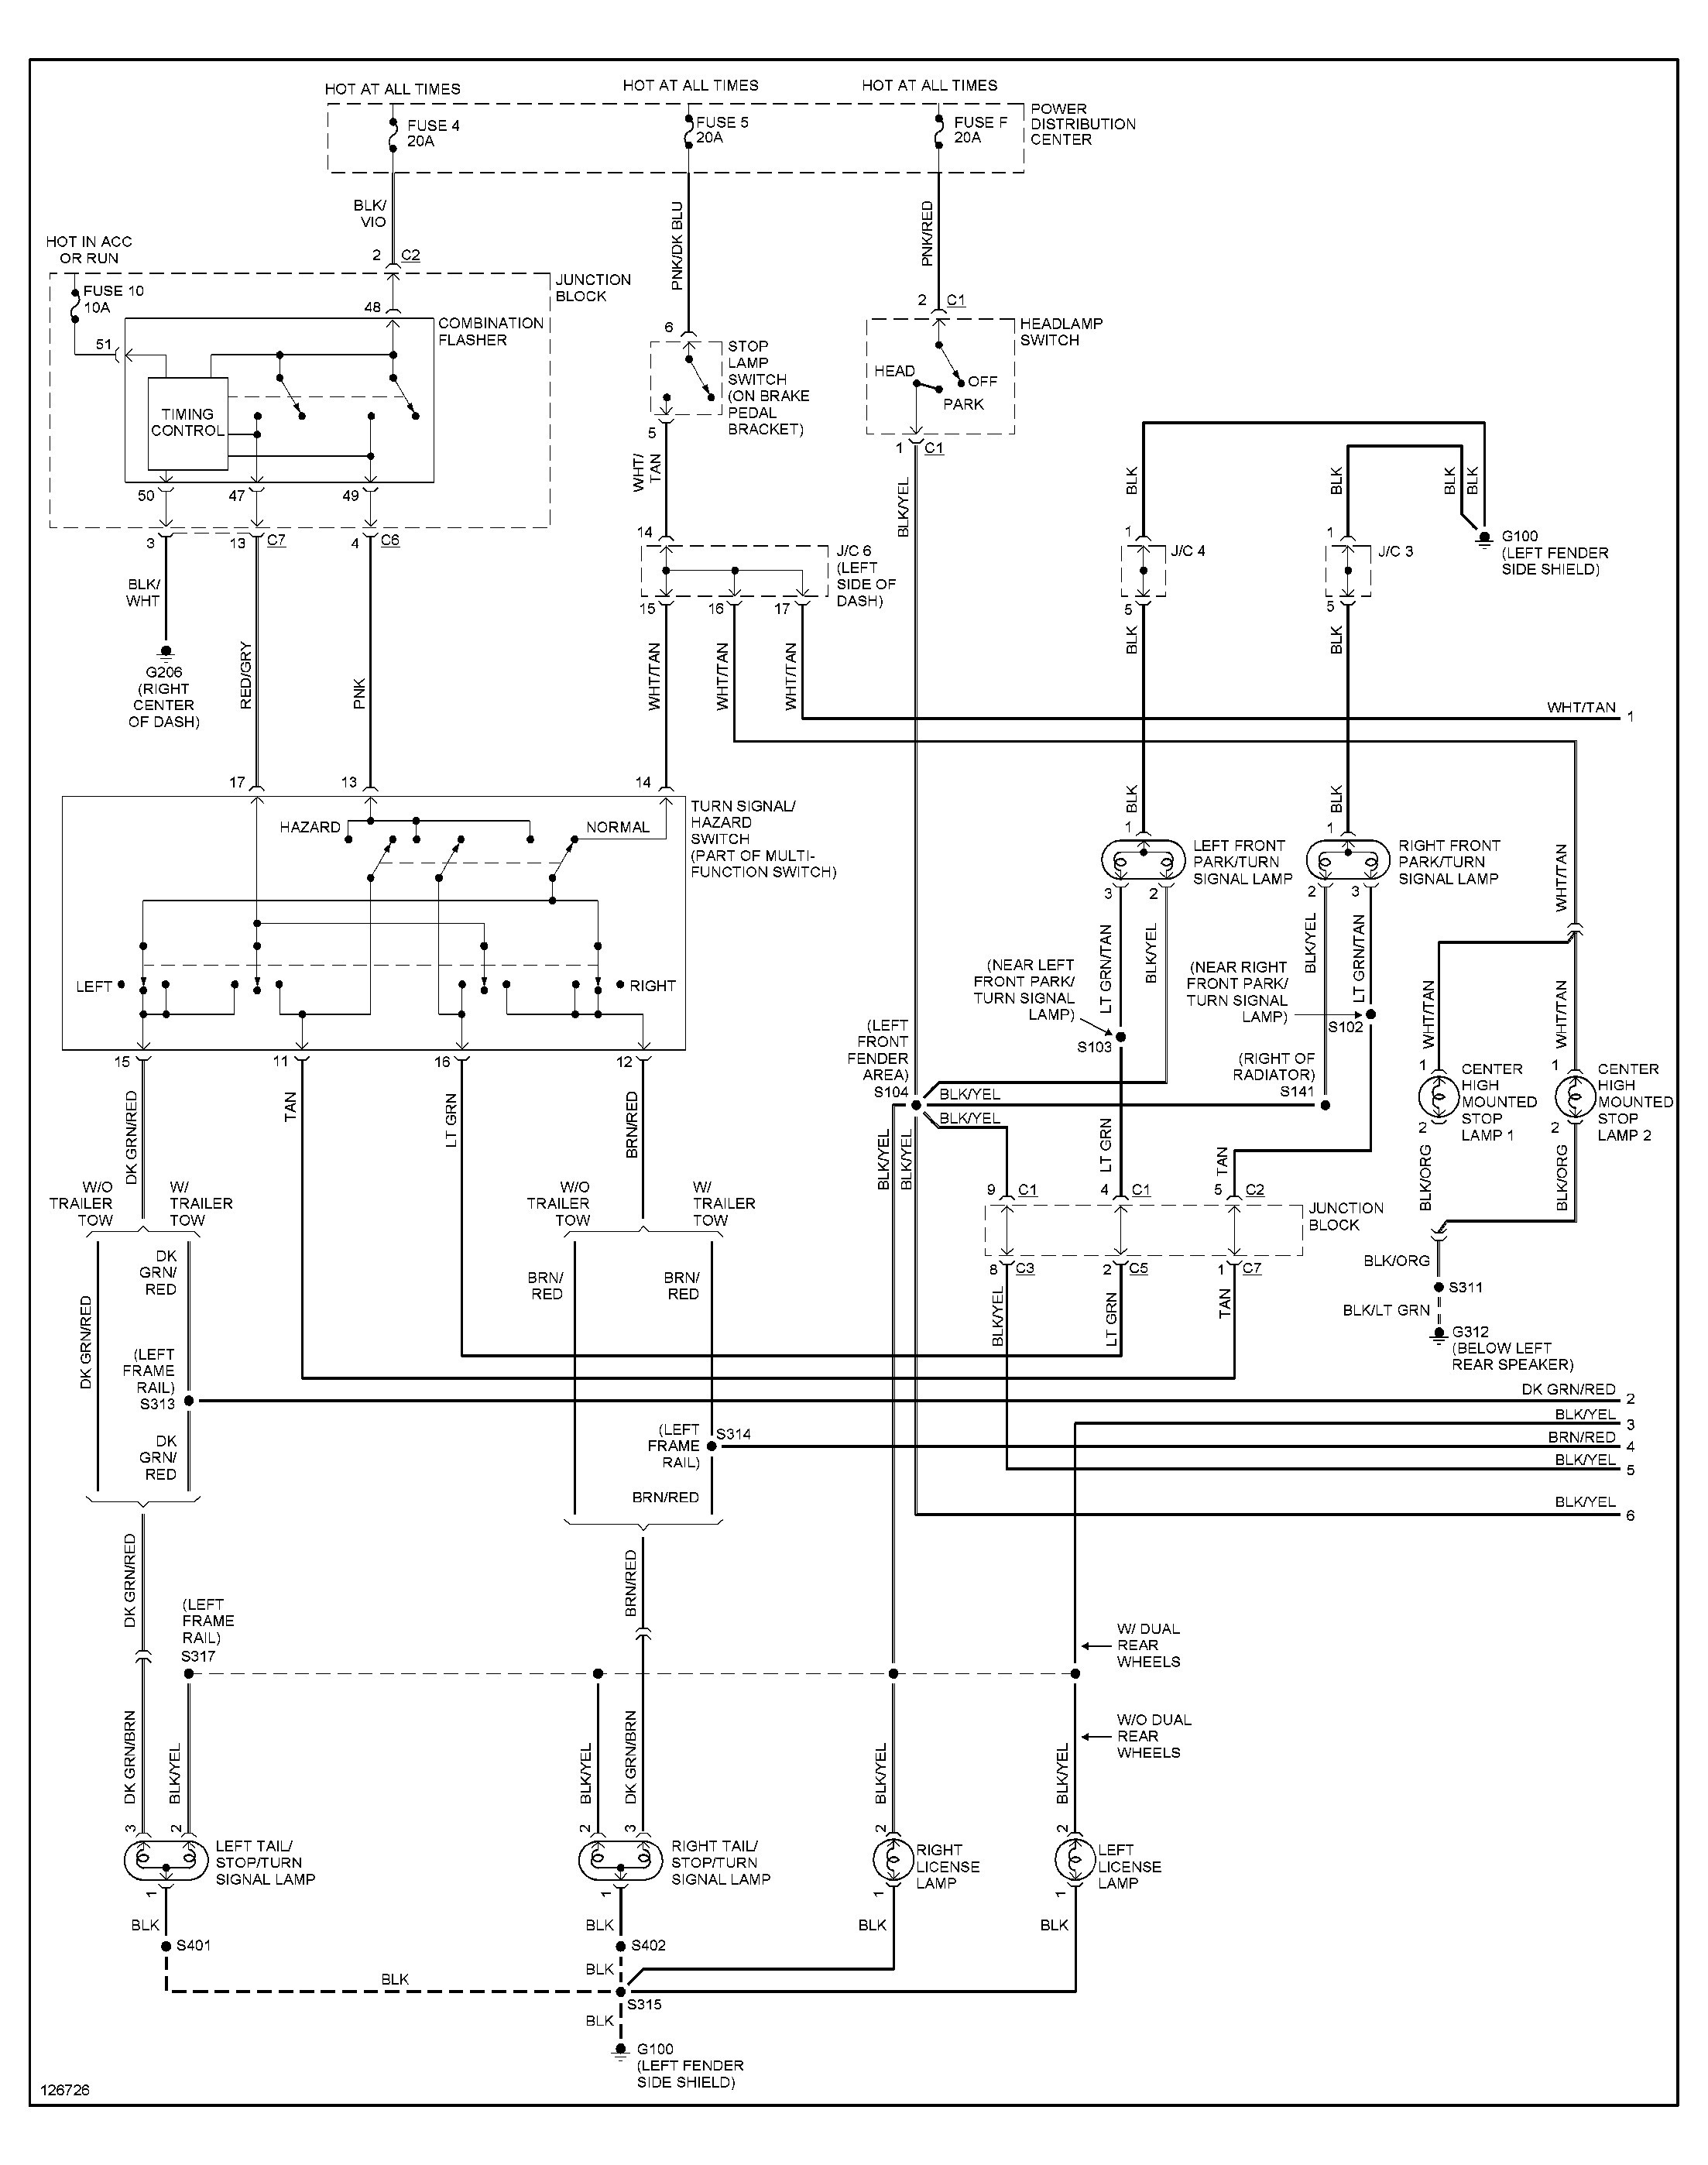 1996 dodge neon radio wiring diagram 3 way switching 2004 ram 1500 engine my